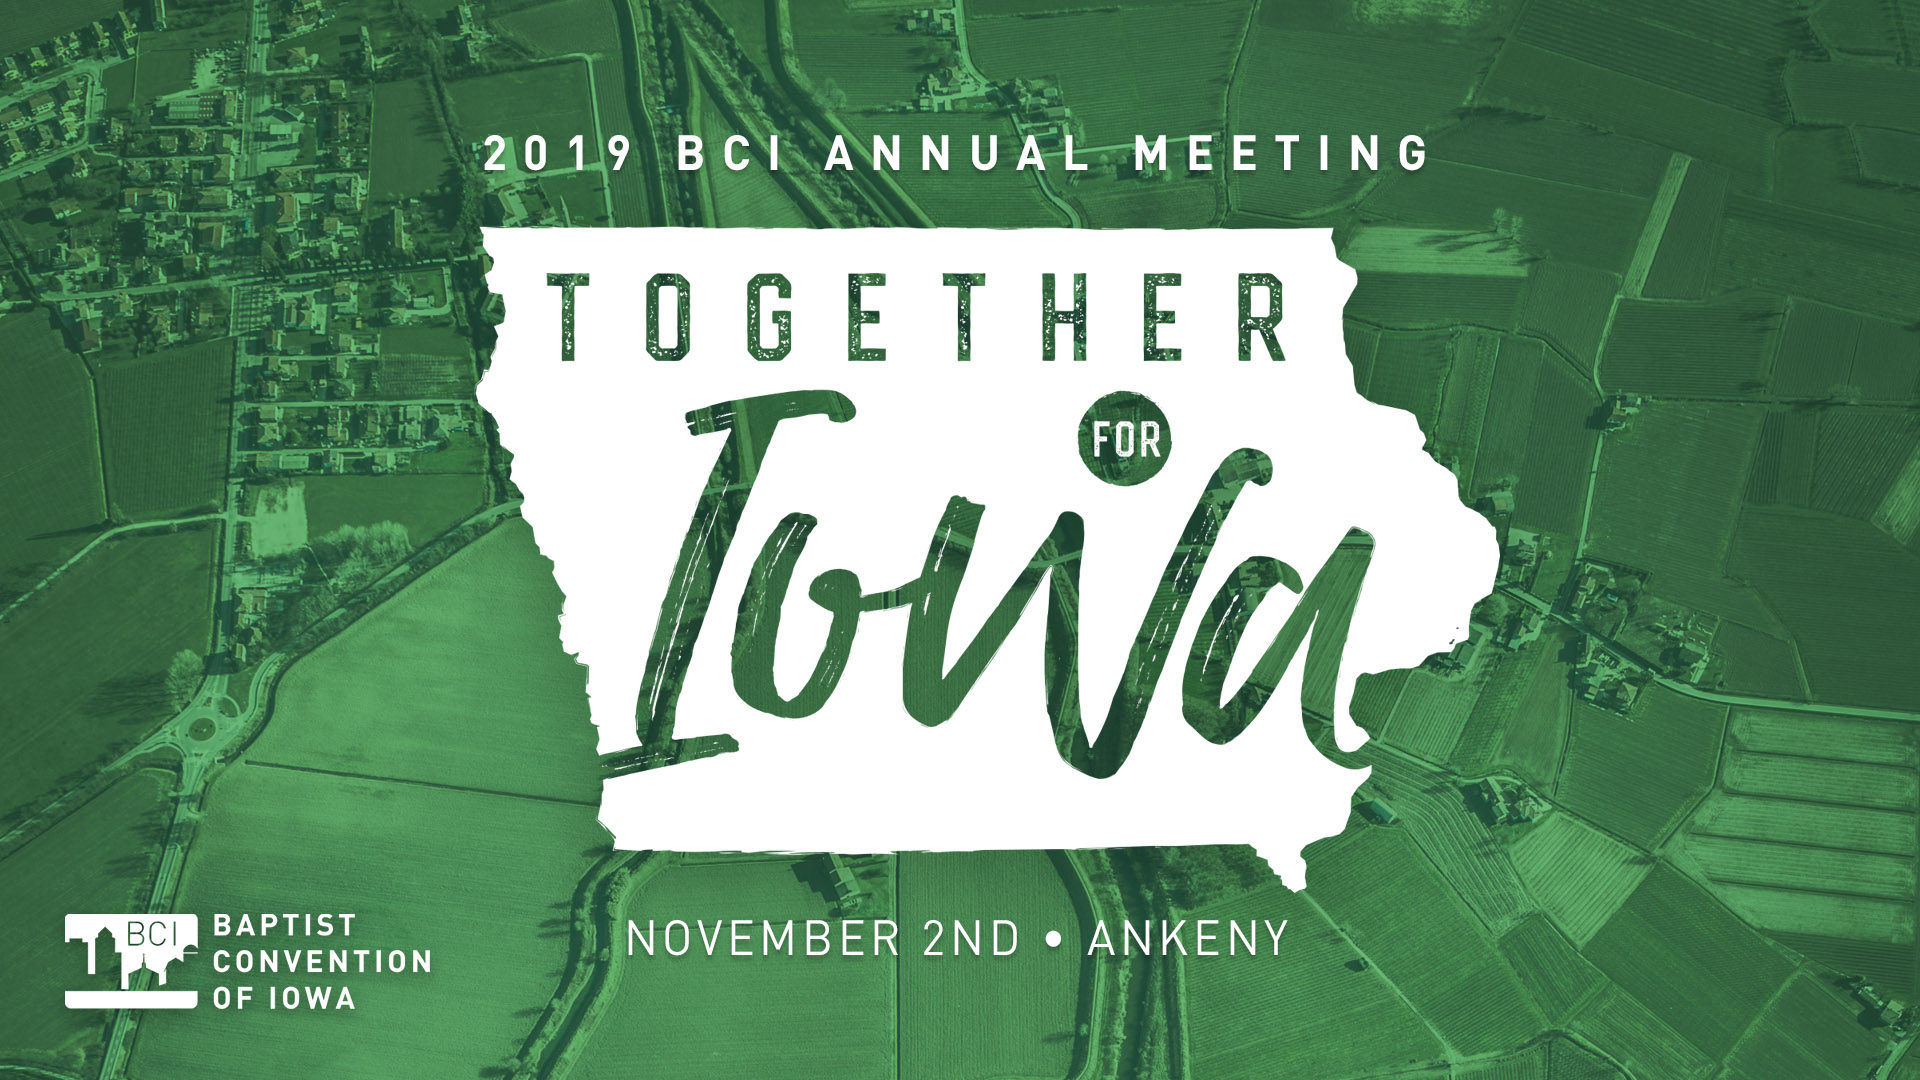 2019 BCI Annual Meeting | Baptist Convention of Iowa